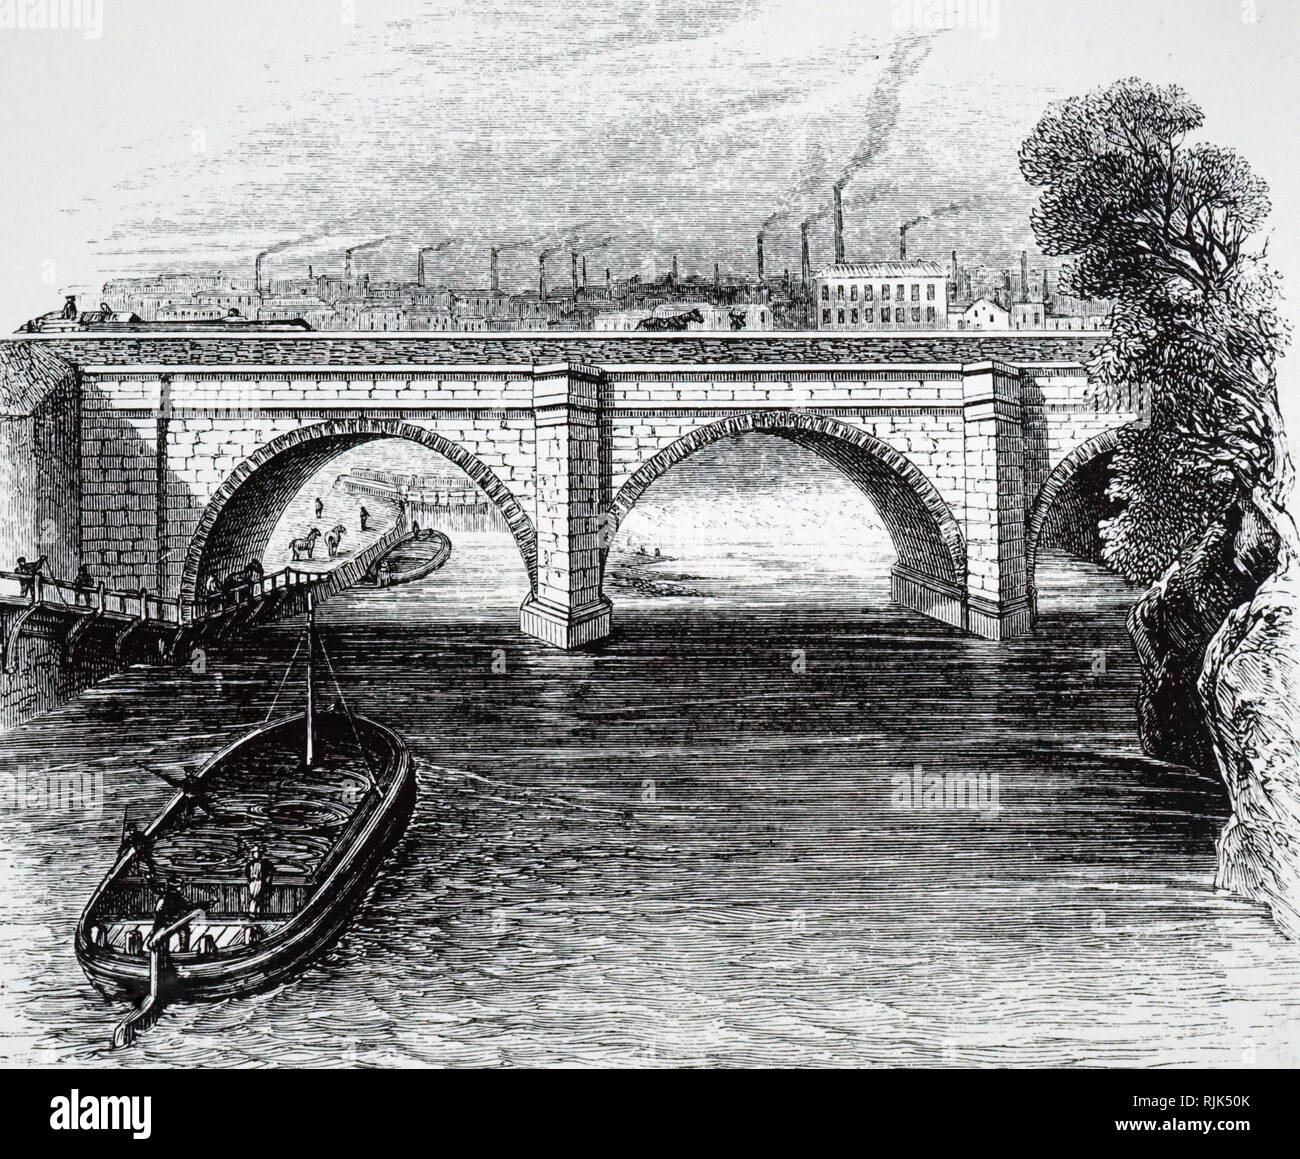 An engraving depicting the Barton aqueduct on the Duke of Bridgewater's Canal from Worsley to Manchester, built by James Brindley. James Brindley (1716-1772) an English engineer. Dated 19th century Stock Photo